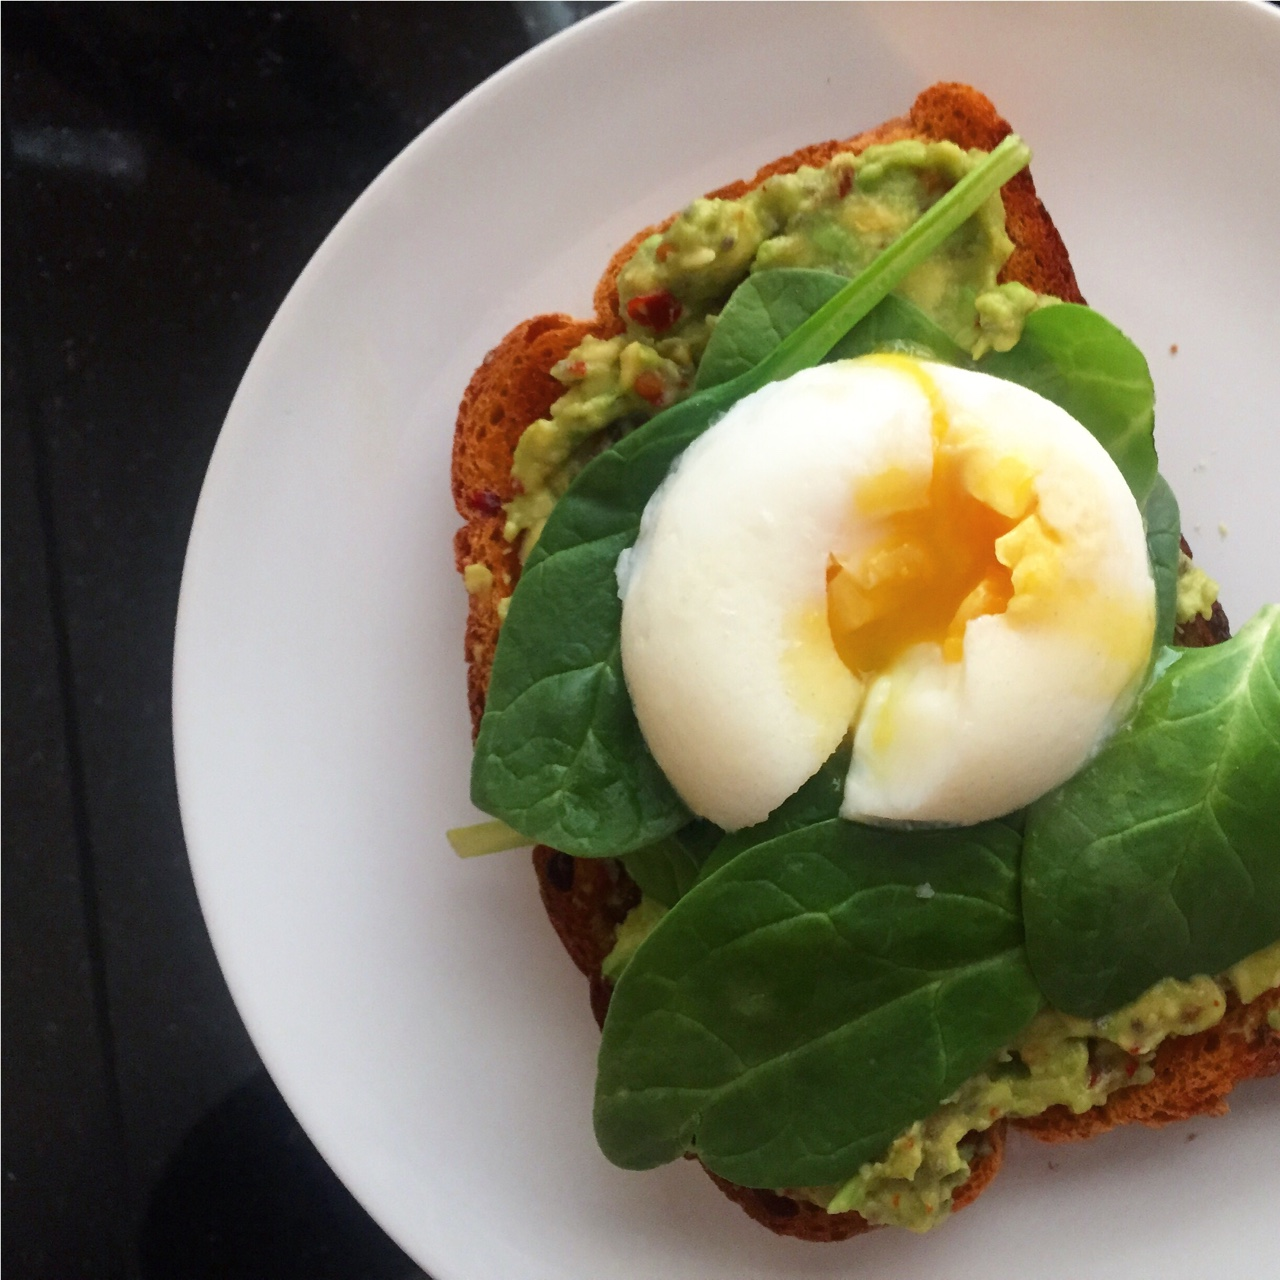 Friyay breakfast! Best way to start the day is with avoc, egg & greens! Today, I enjoyed smashed avocado with chilli flakes on a slick of sun-dried tomato bread with spinach and a poached egg- Friday fuel! S H E